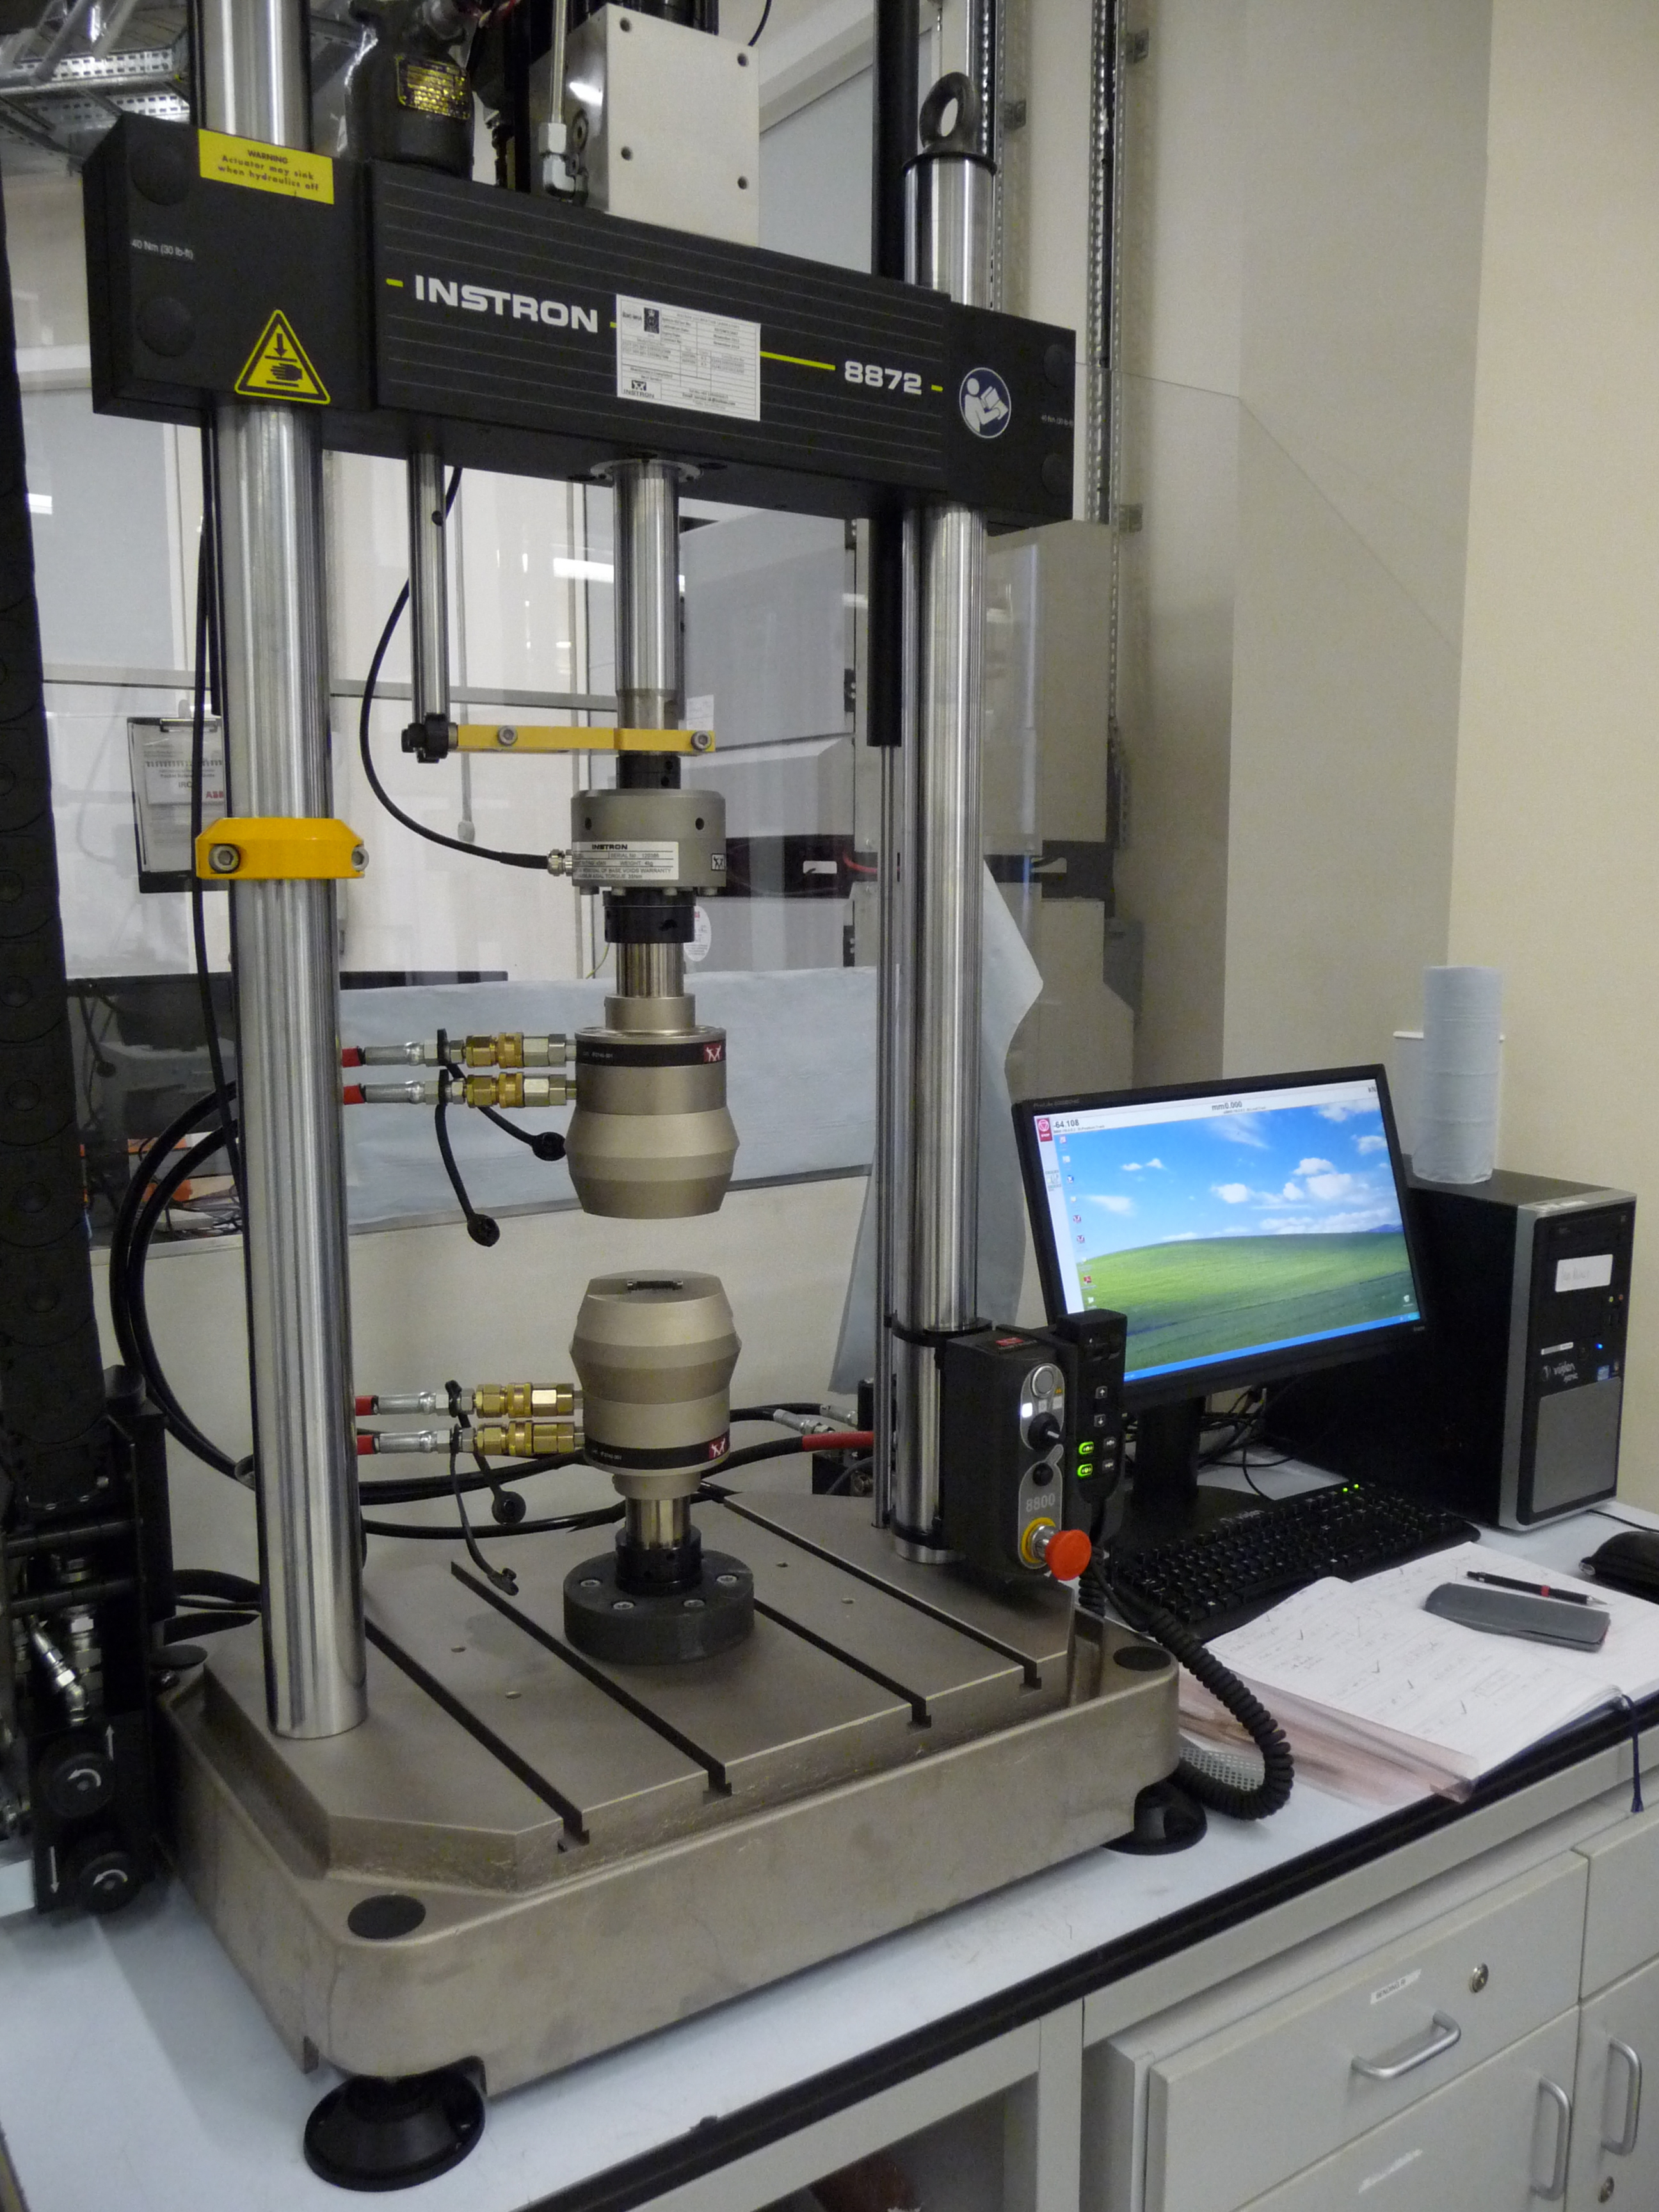 Instron table-mounted servo-hydraulic test machine